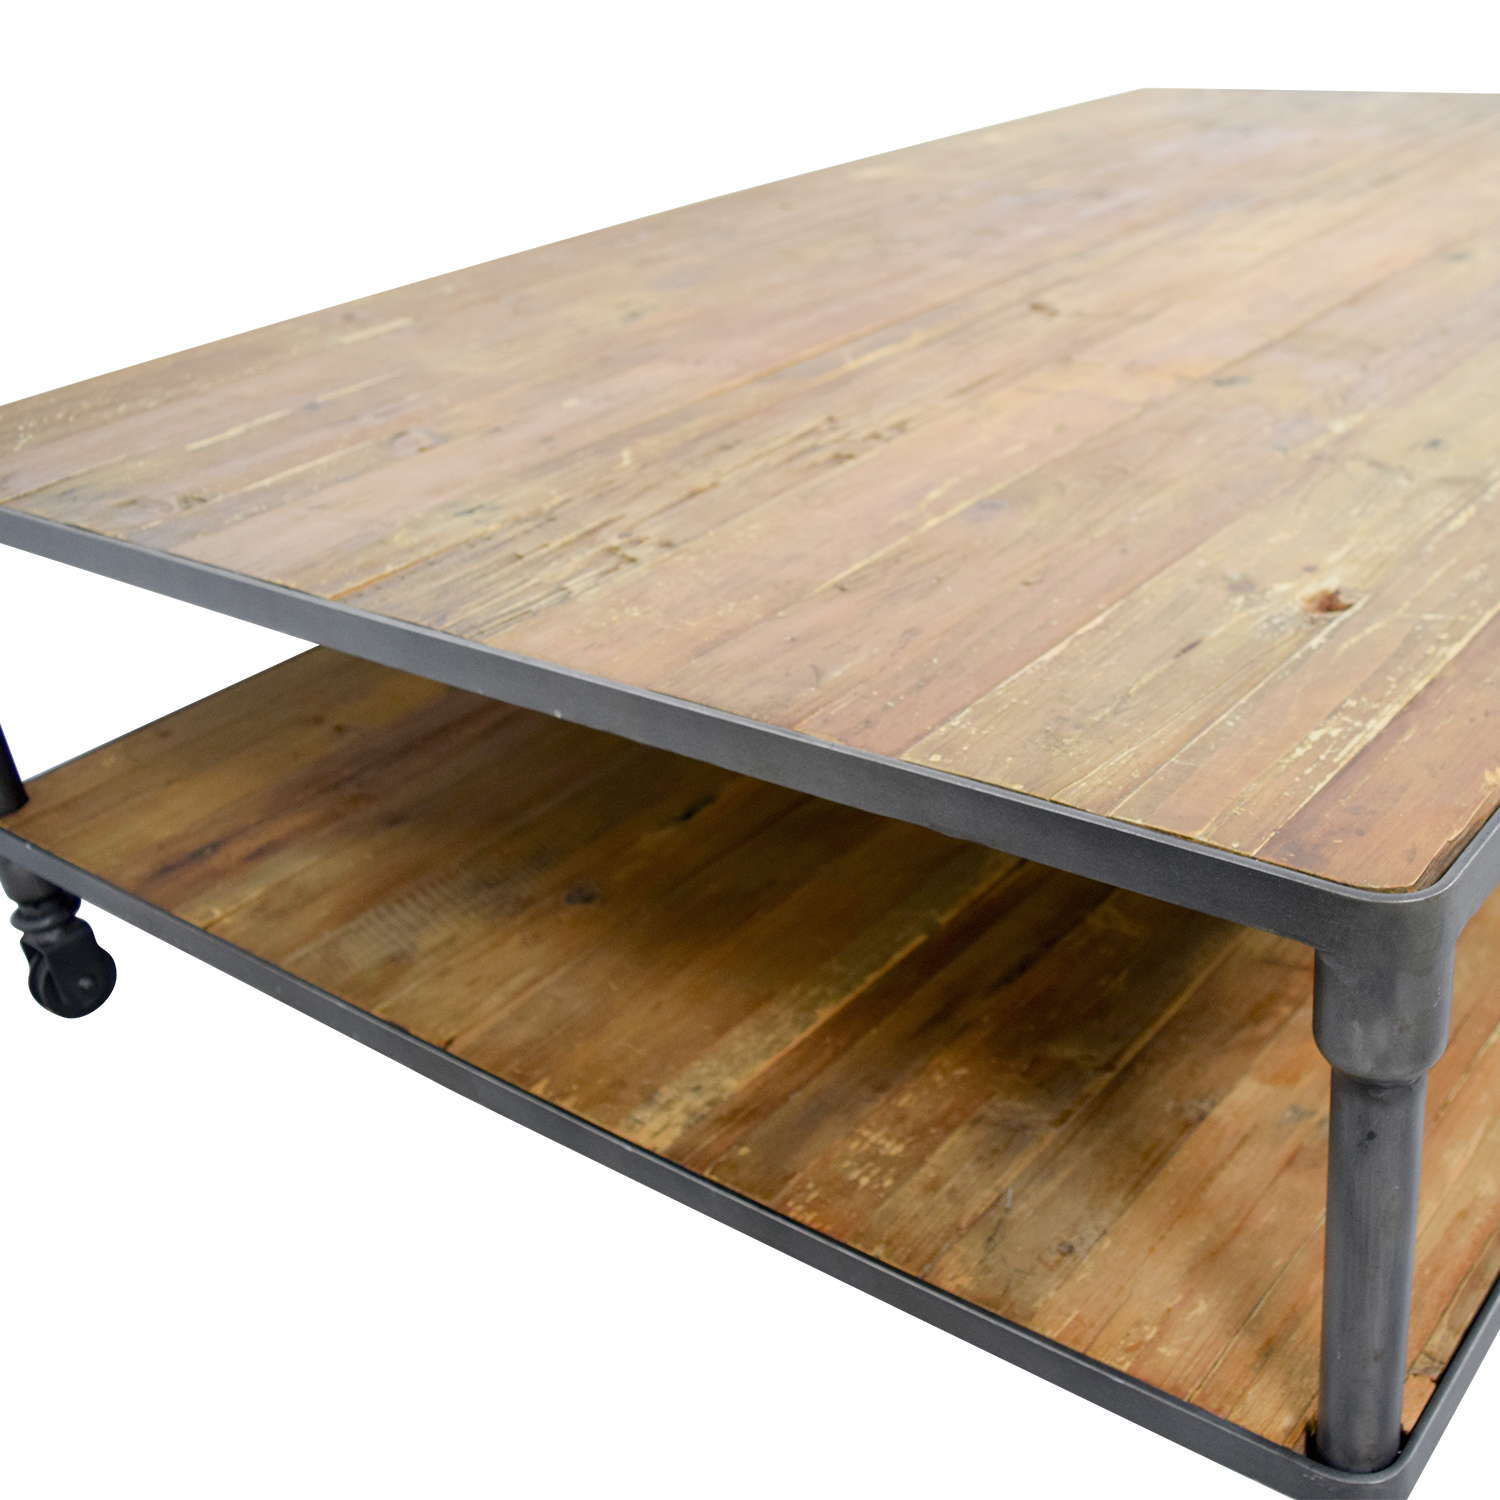 ABC Carpet & Home ABC Carpet & Home Reclaimed Wood Coffee Table on sale